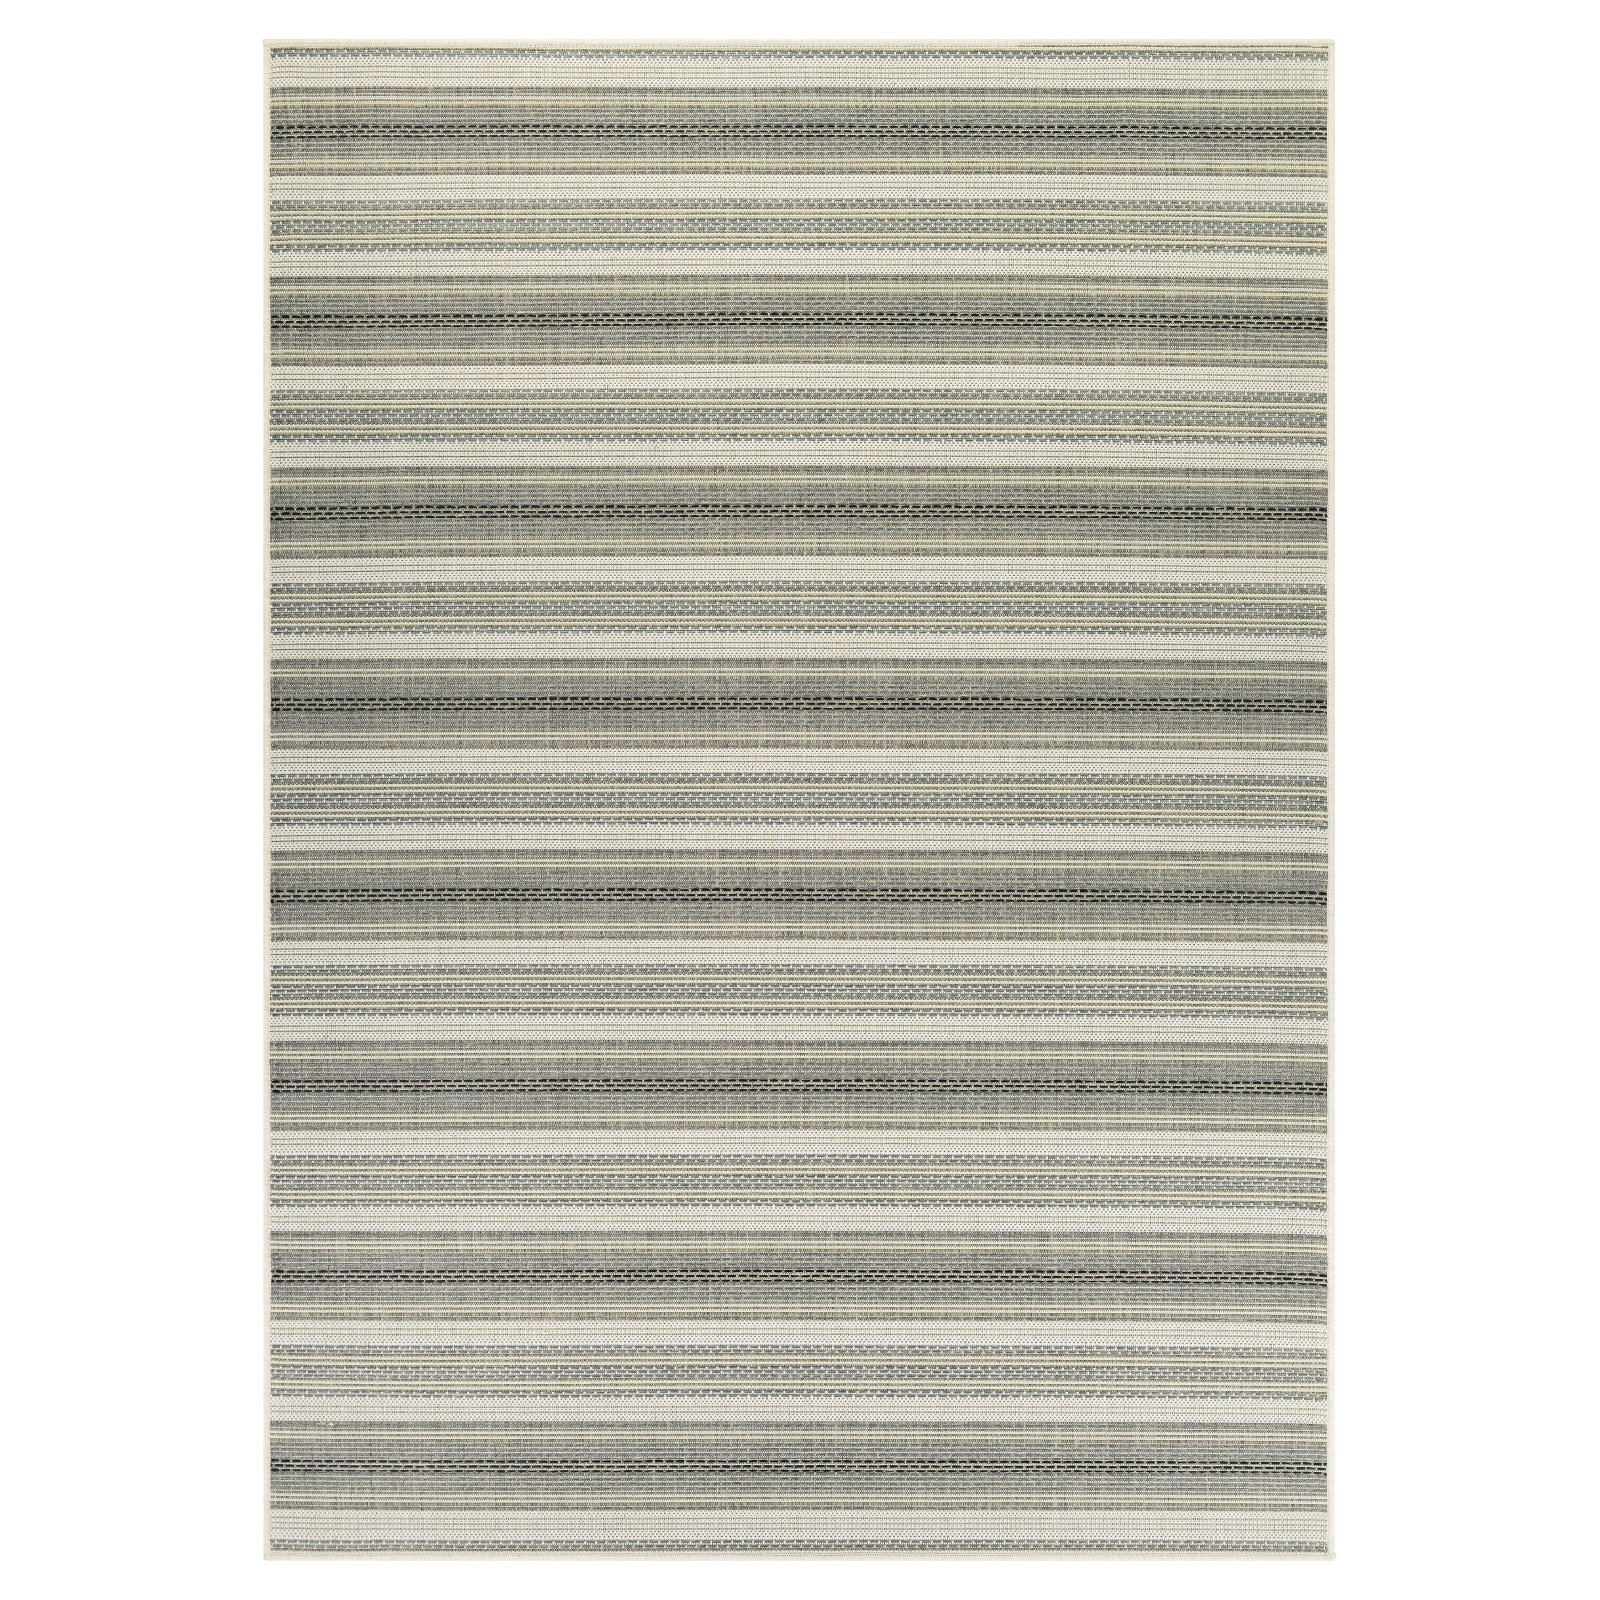 Couristan Monaco 604131 Marbella Indoor / Outdoor Area Rug